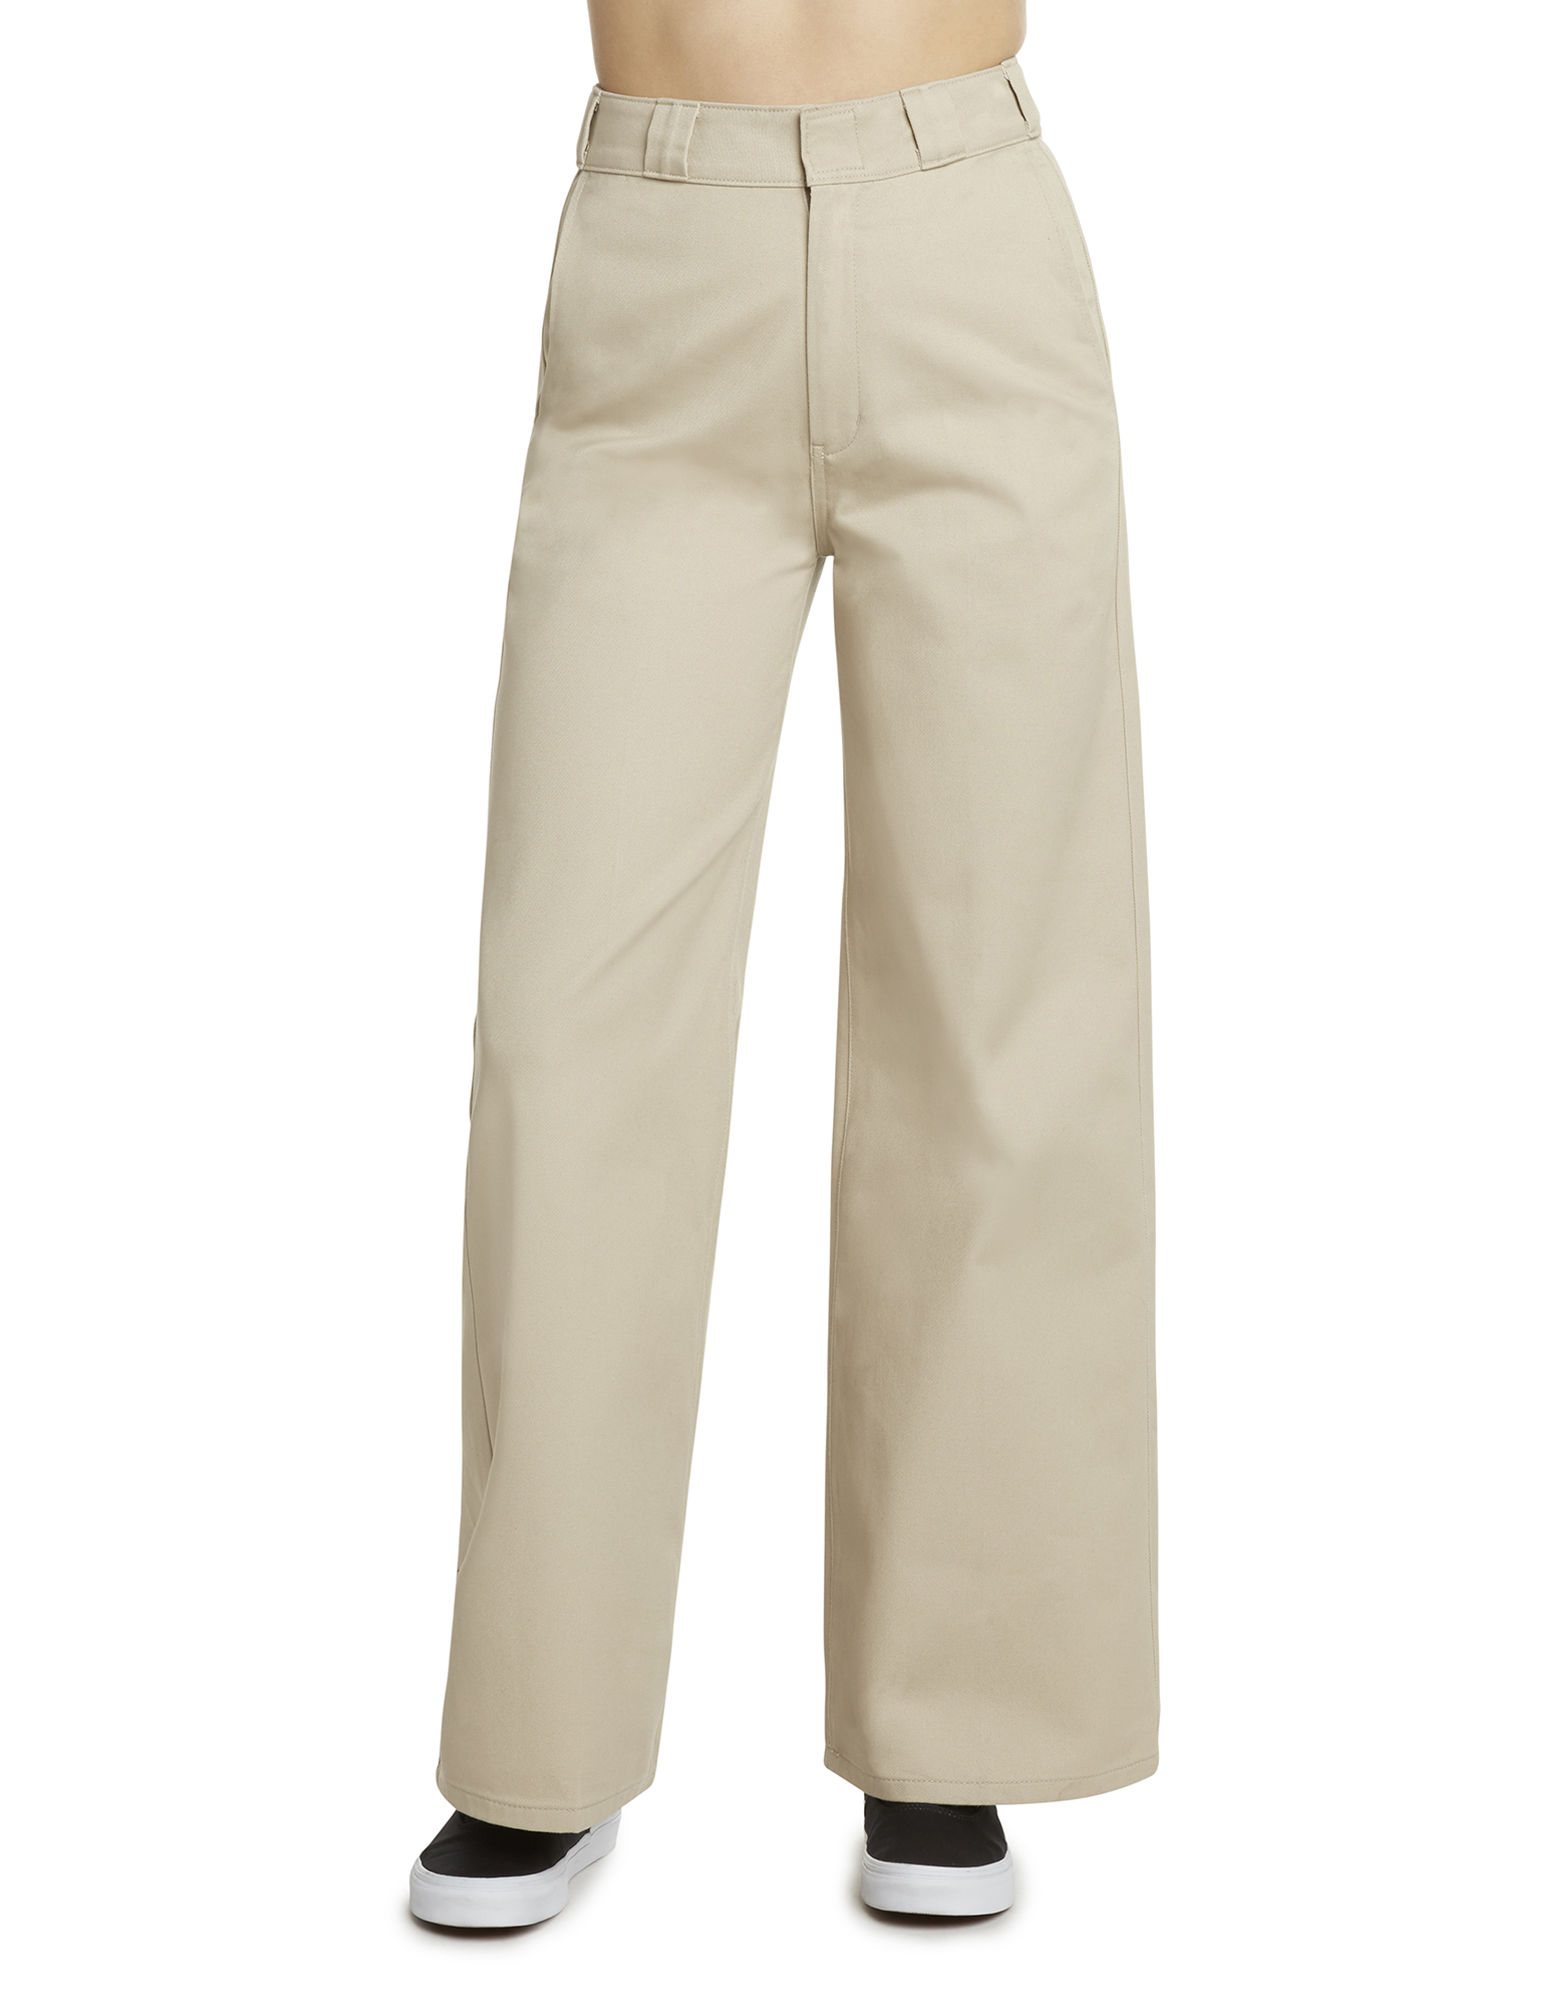 Girl Juniors' Worker Wide Leg Skater Pants by Dickies, available on dickies.com for $69.99 Kendall Jenner Pants Exact Product